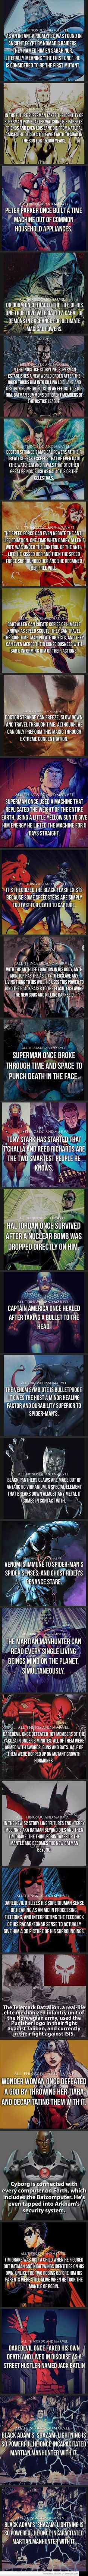 All Things Marvel and DC - Fact Dump